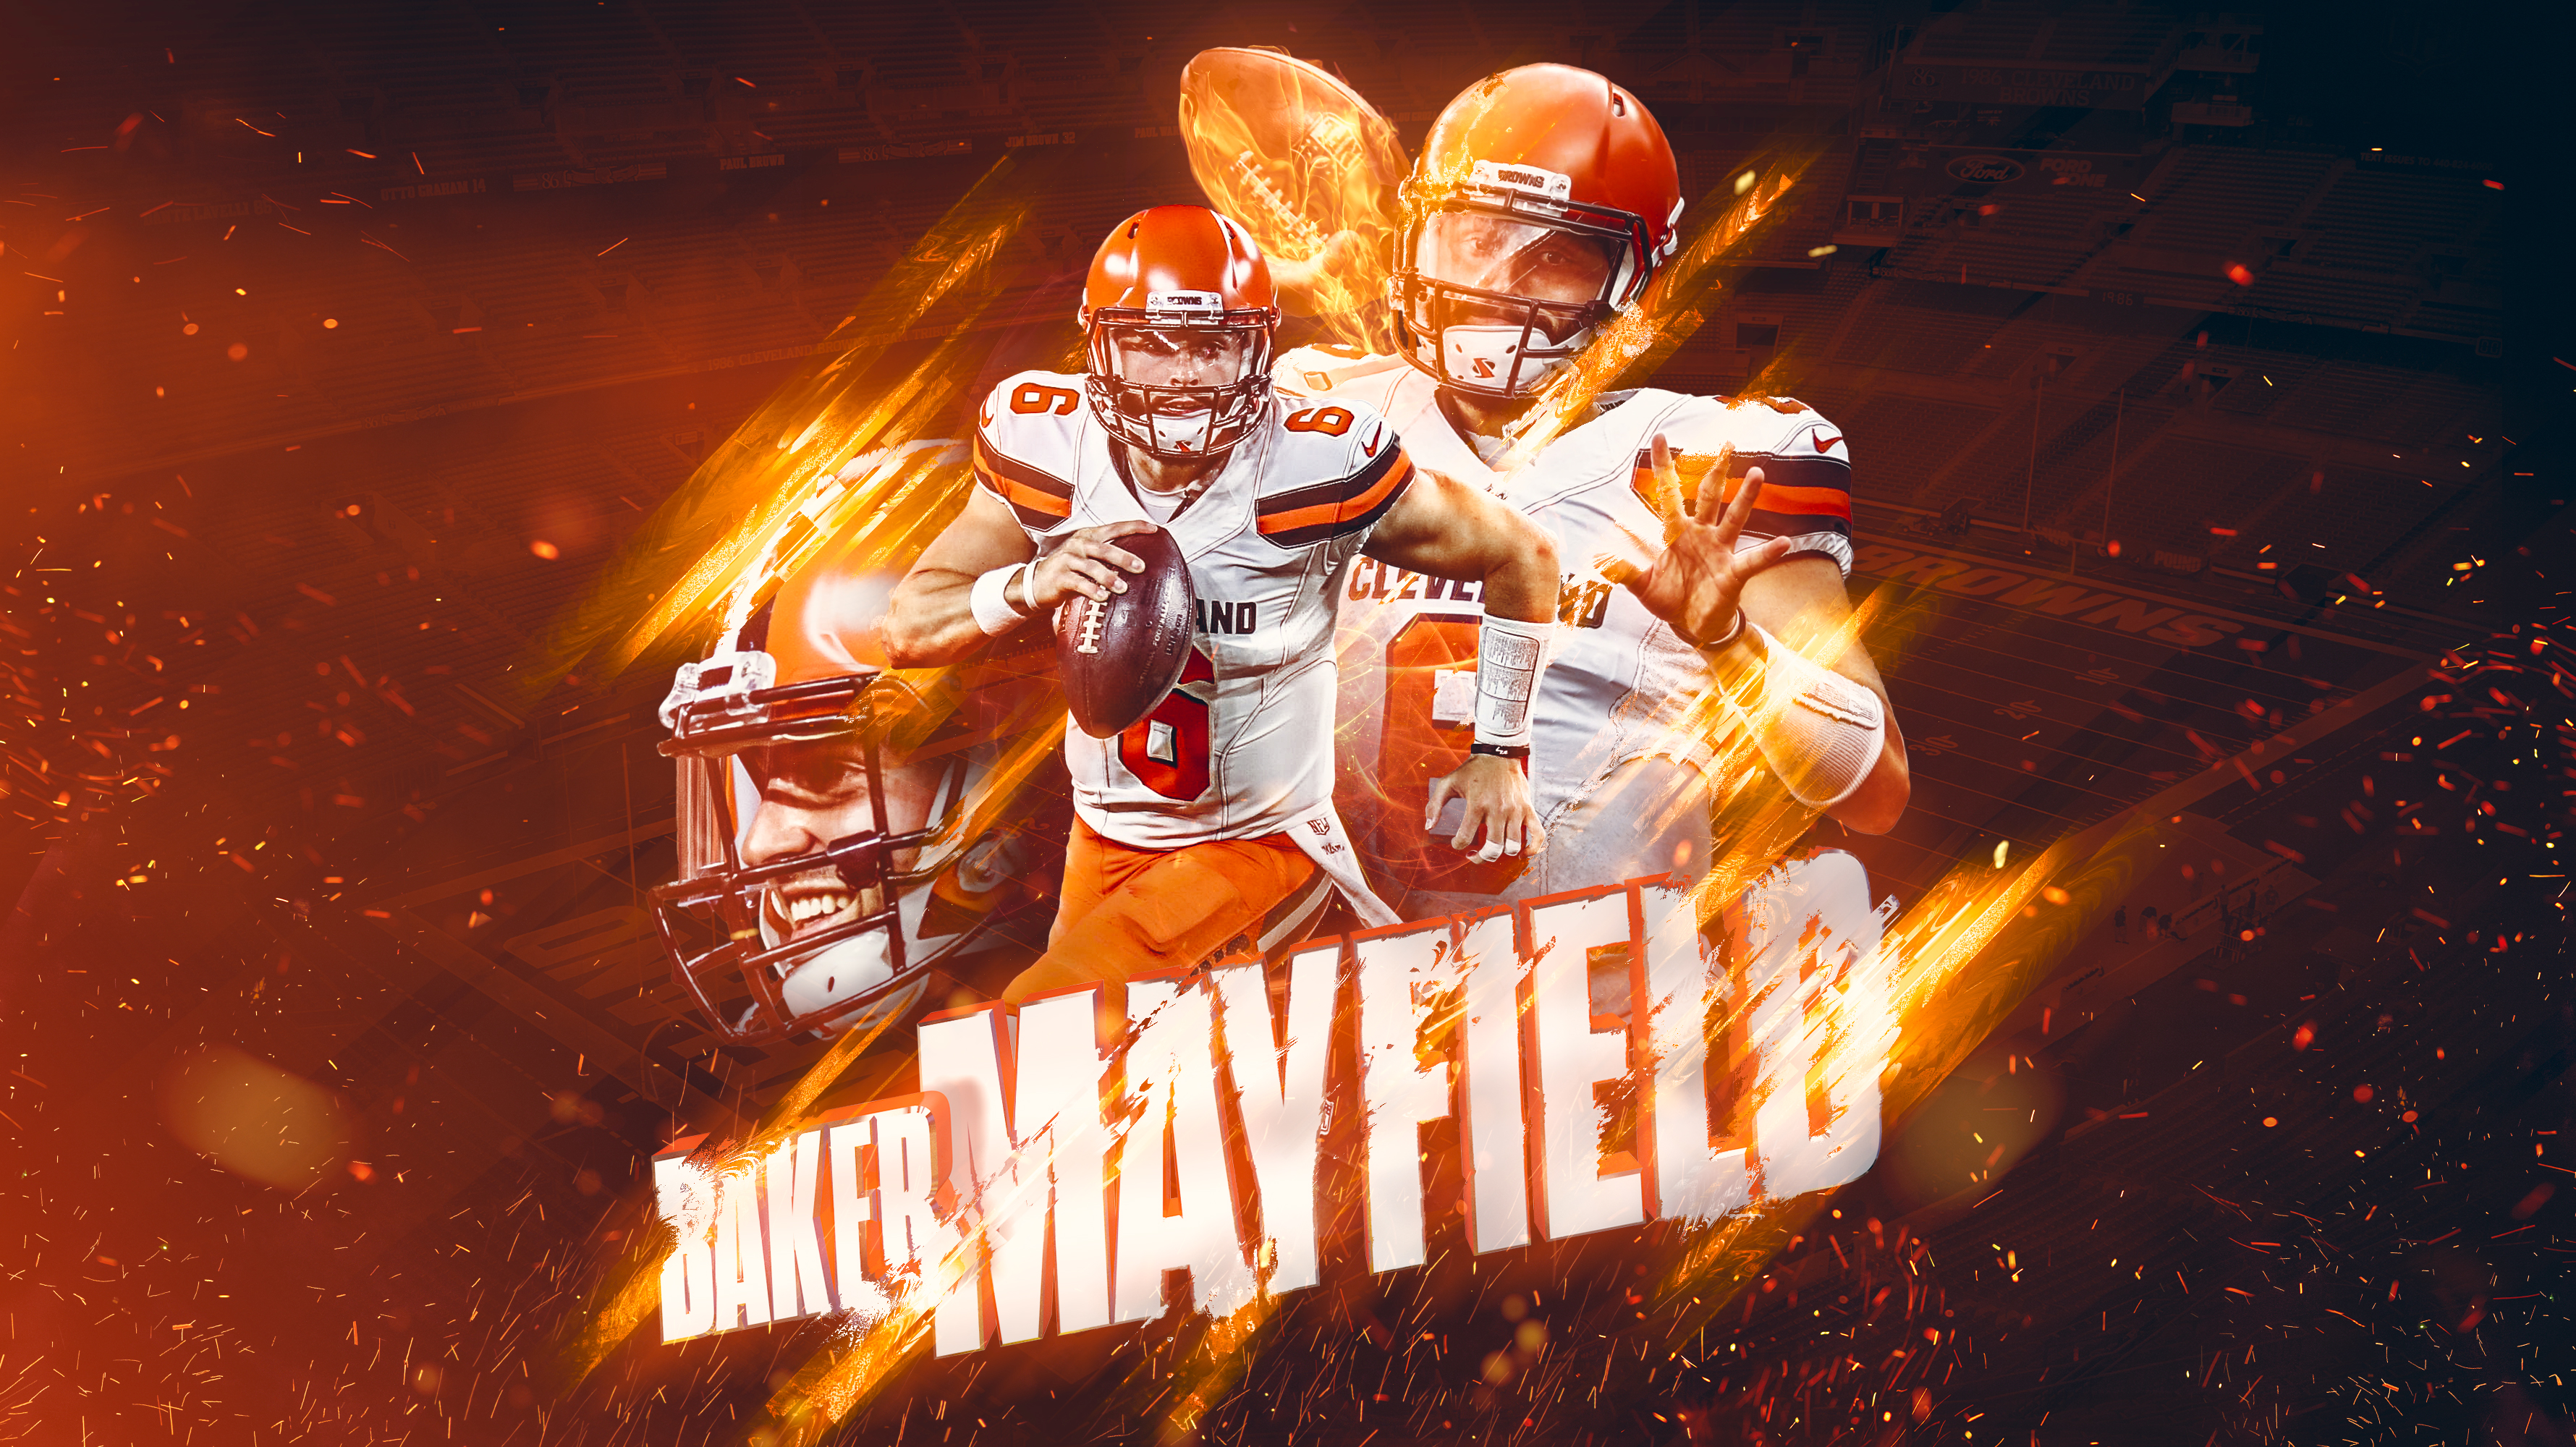 Baker Mayfield Desktop Wallpaper Browns 3560x2000